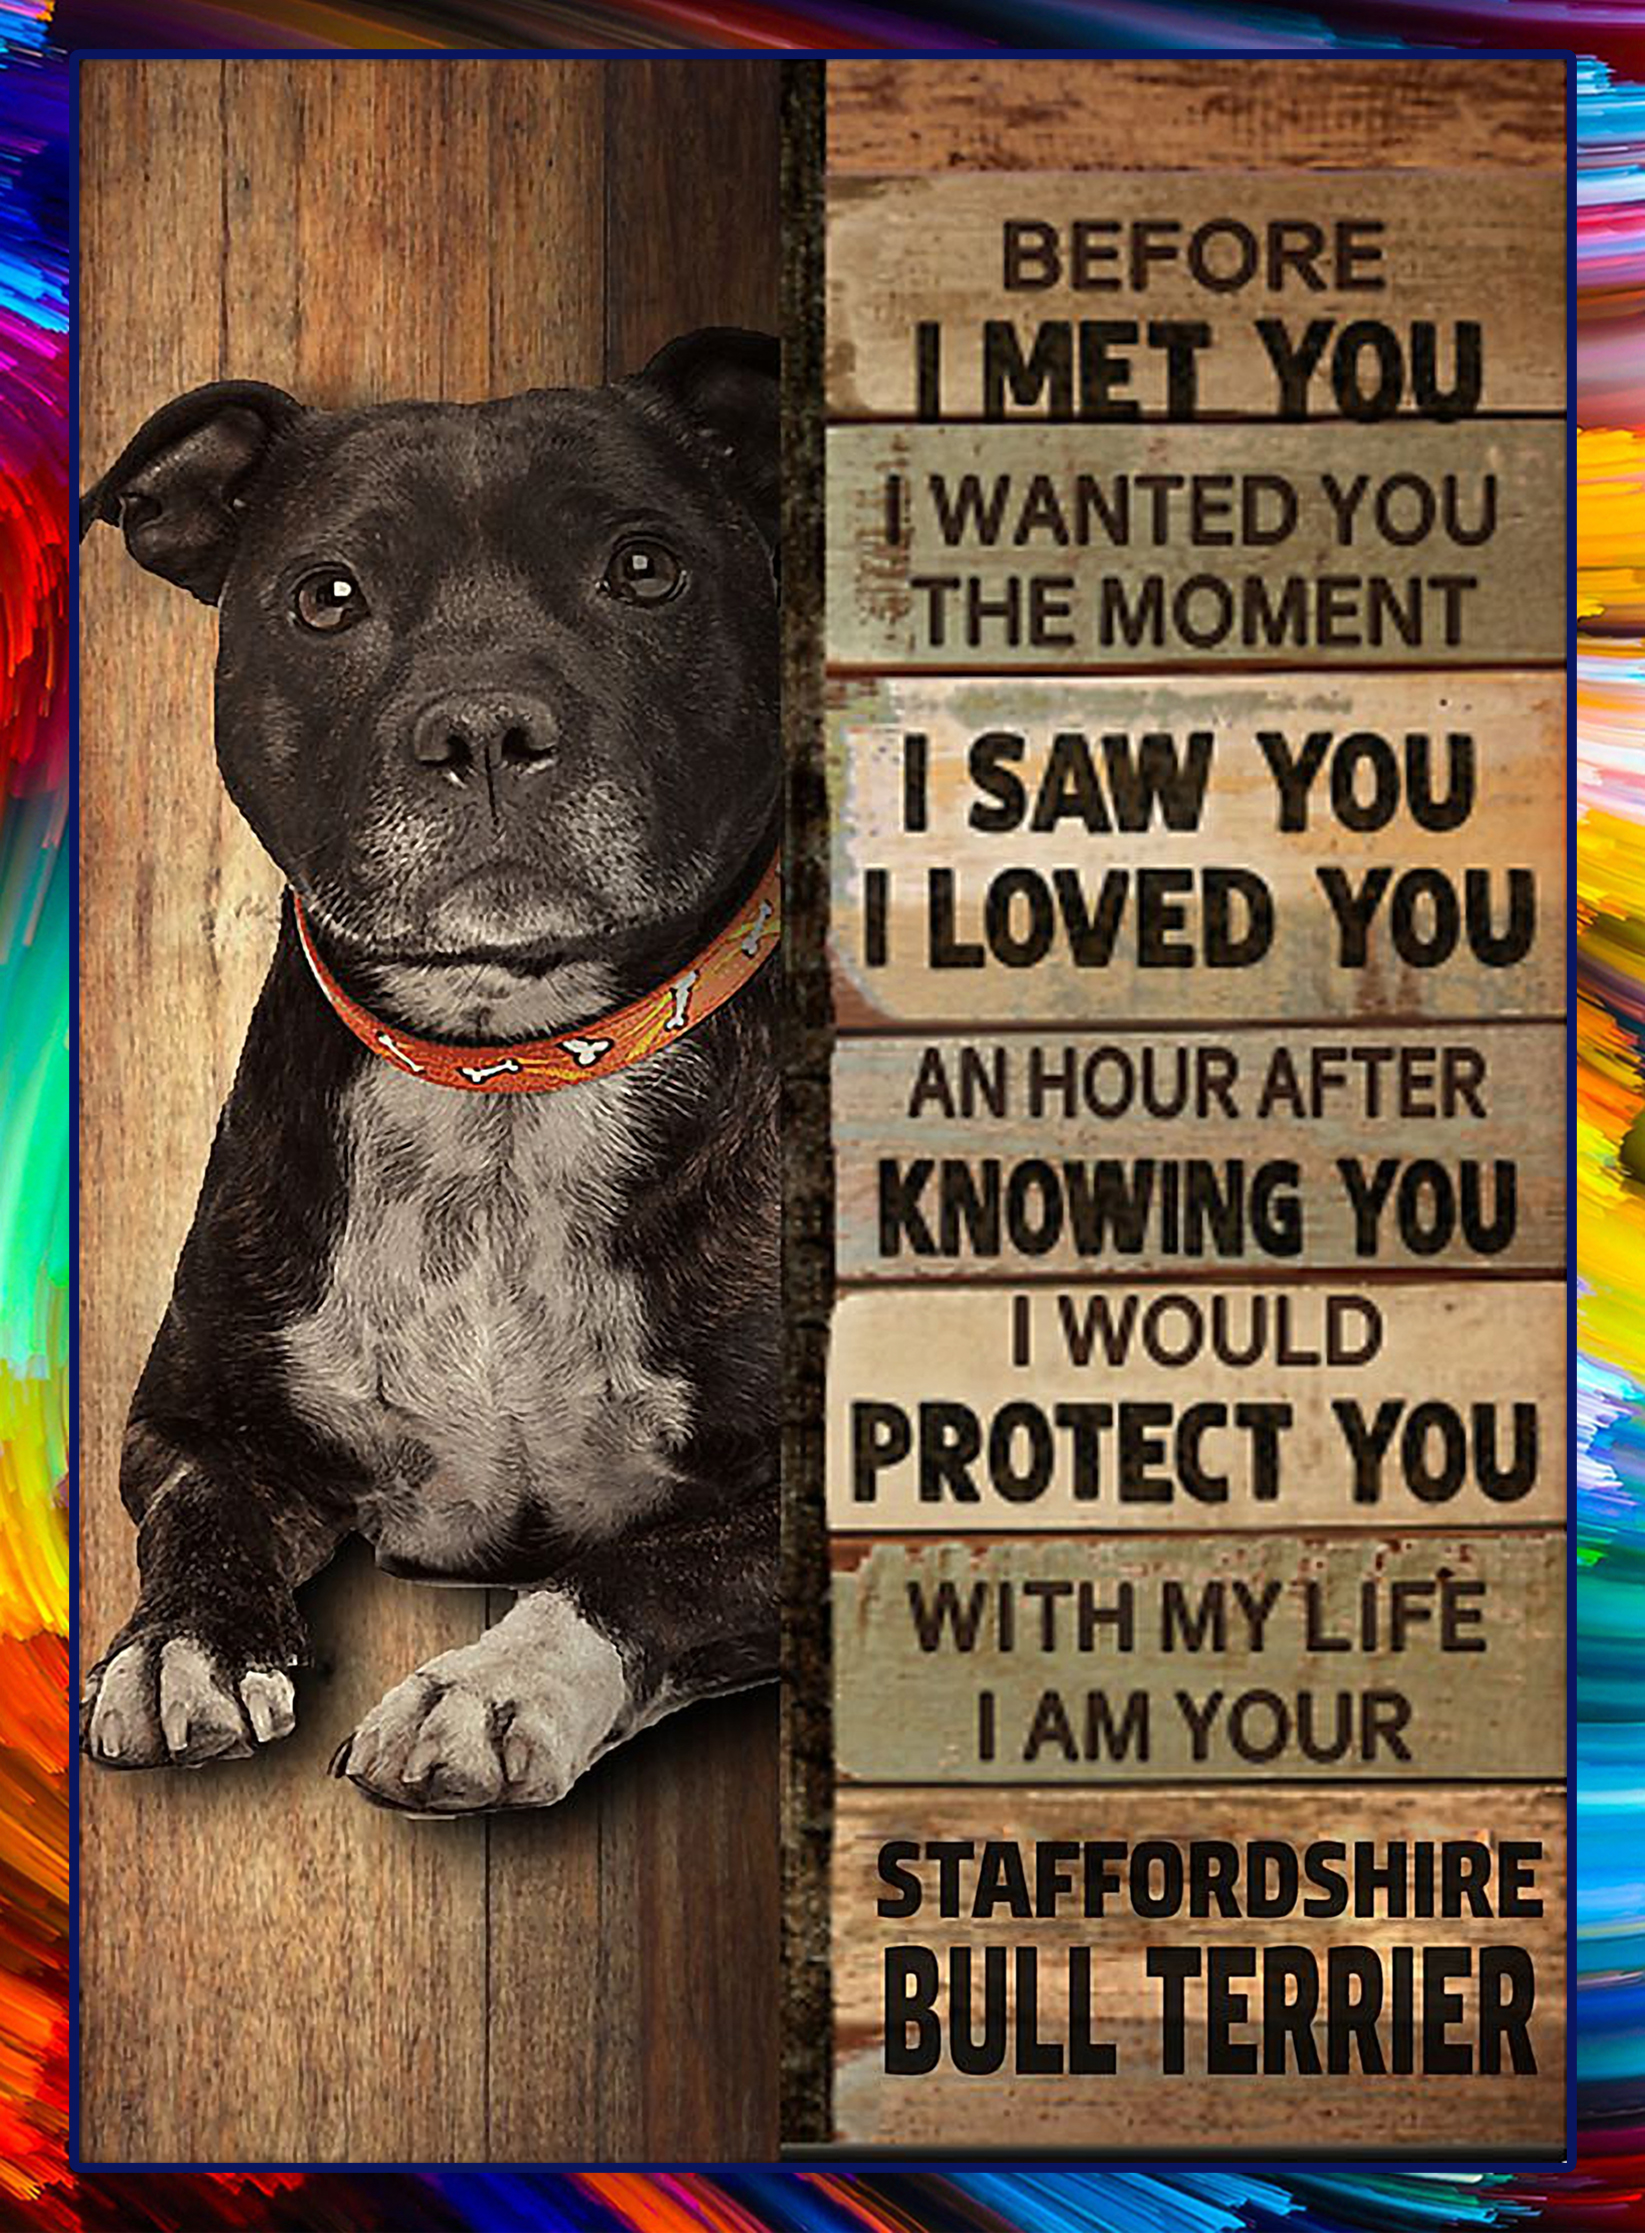 Staffordshire bull terrier before I met you poster - A2